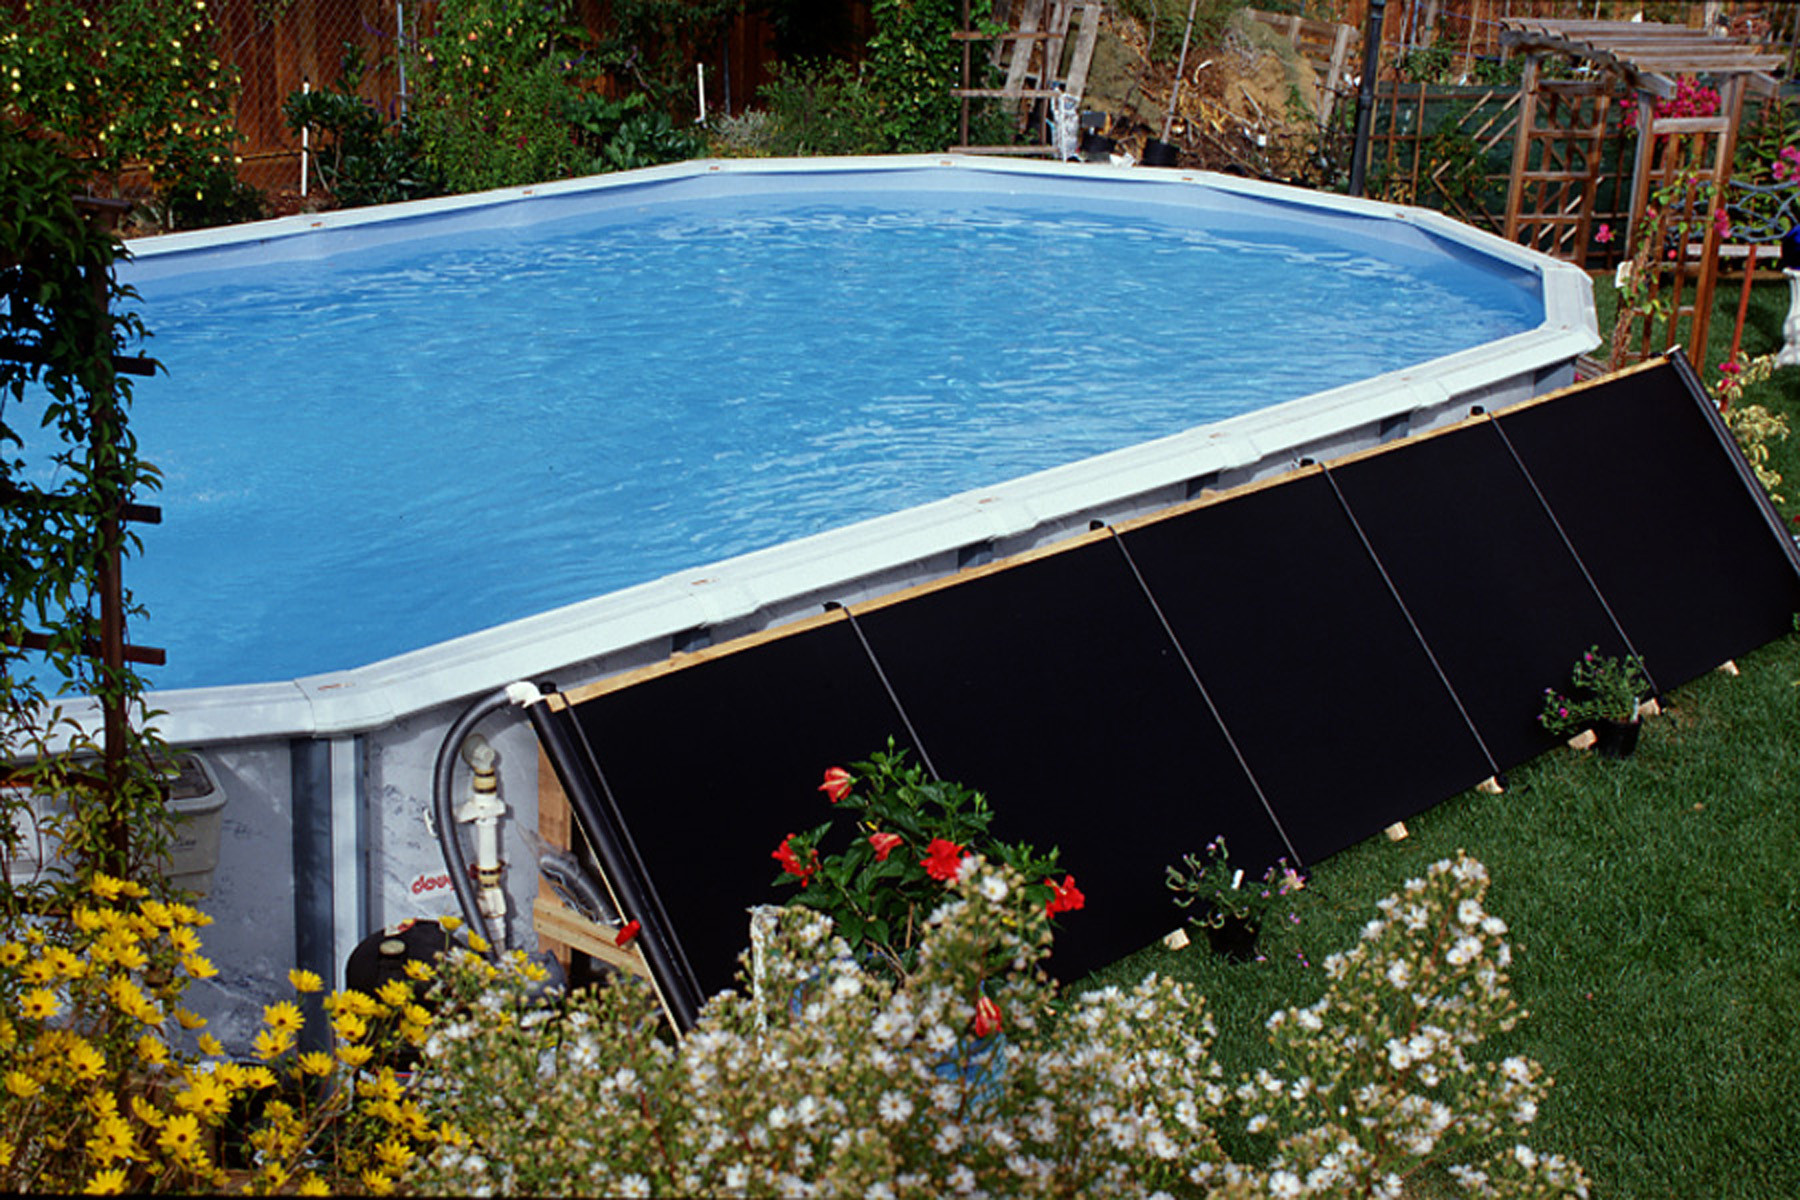 Best ideas about In Ground Pool Solar Heaters . Save or Pin NEW FAFCO SOLAR SWIMMING POOL ABOVE GROUND SOLAR HEATING Now.